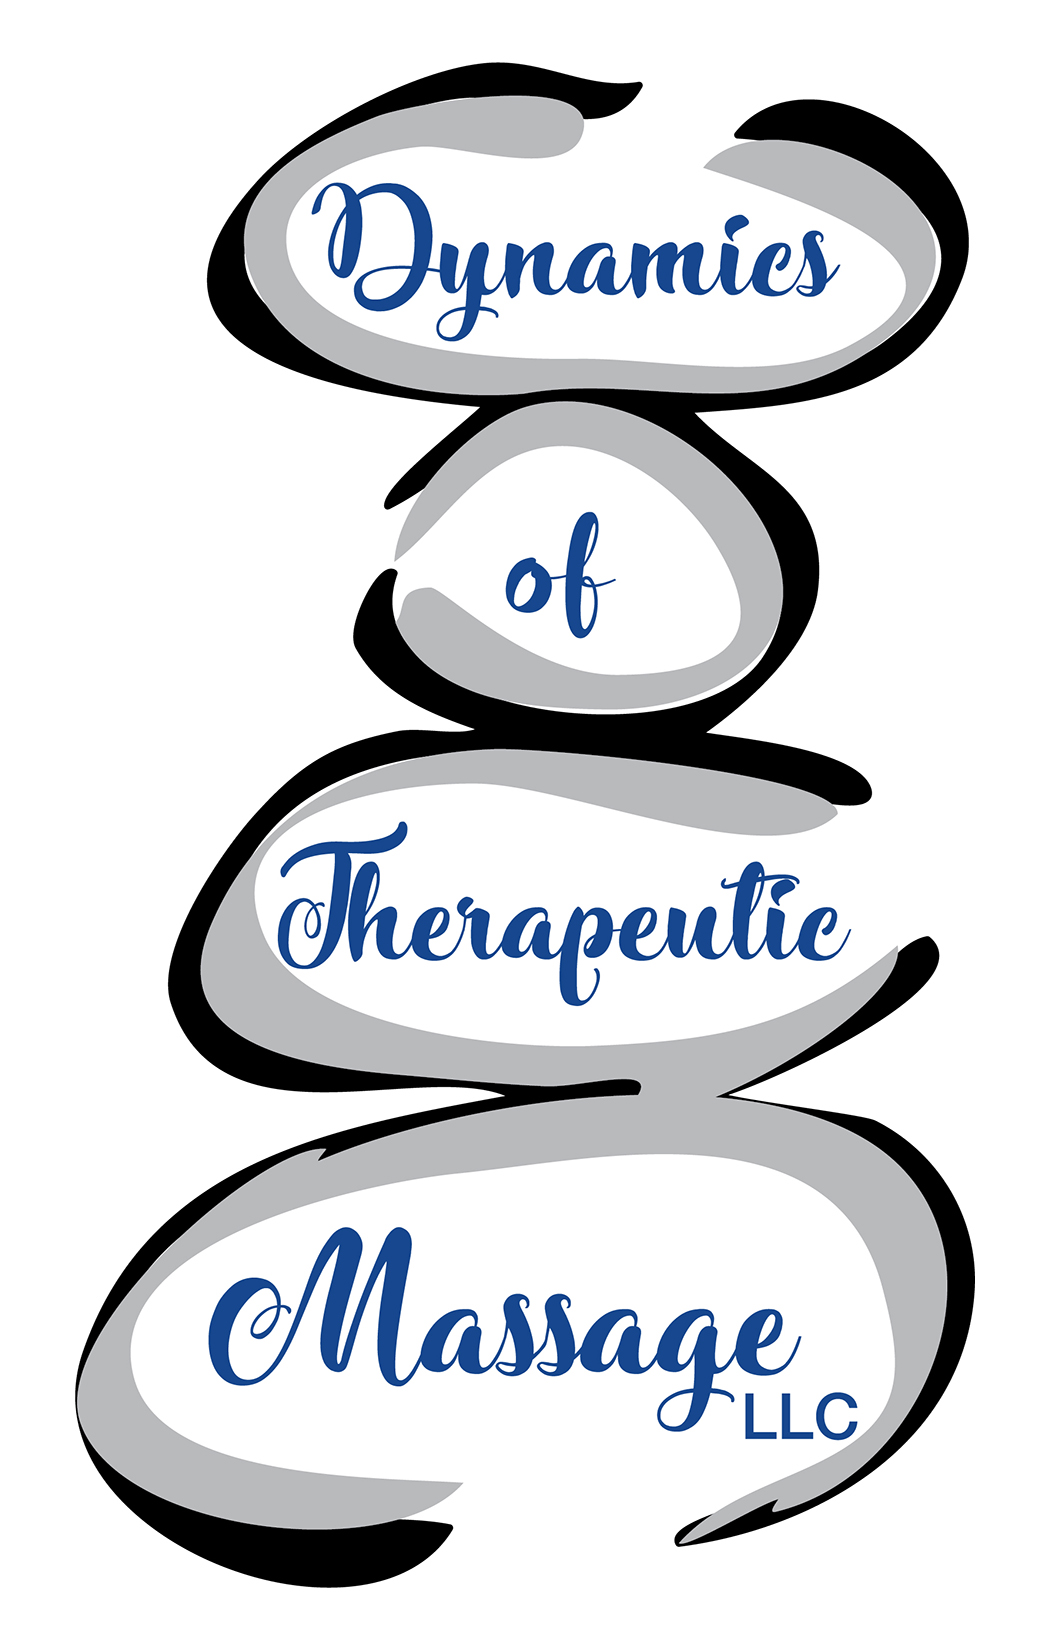 Sponsor Dynamics of Therapeutic Massage